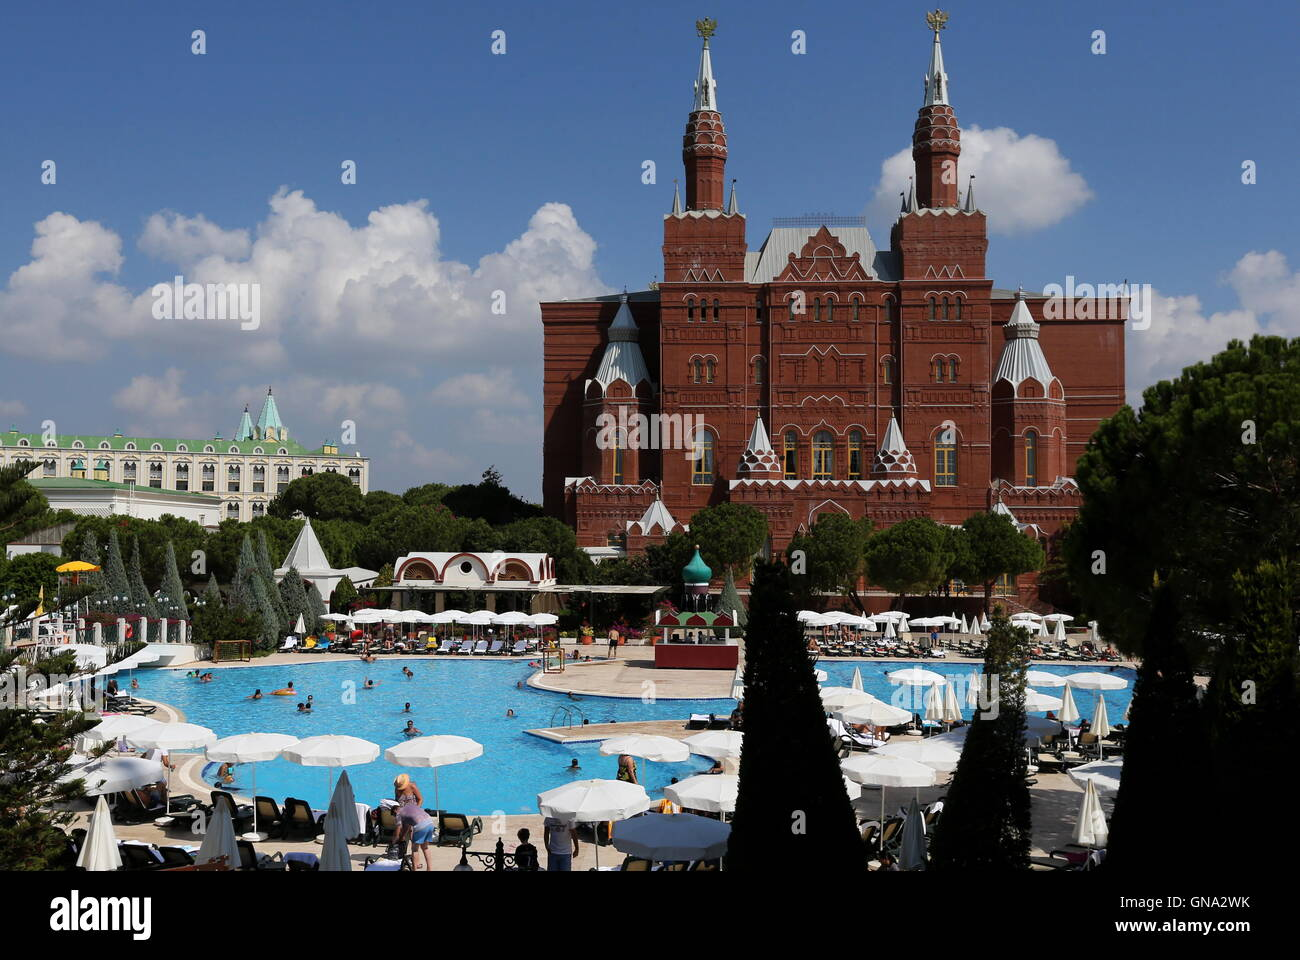 antalya turkey august 29 2016 a building resembling moscows museum of history at the kremlin palace hotel in the mediterranean resort of antalya